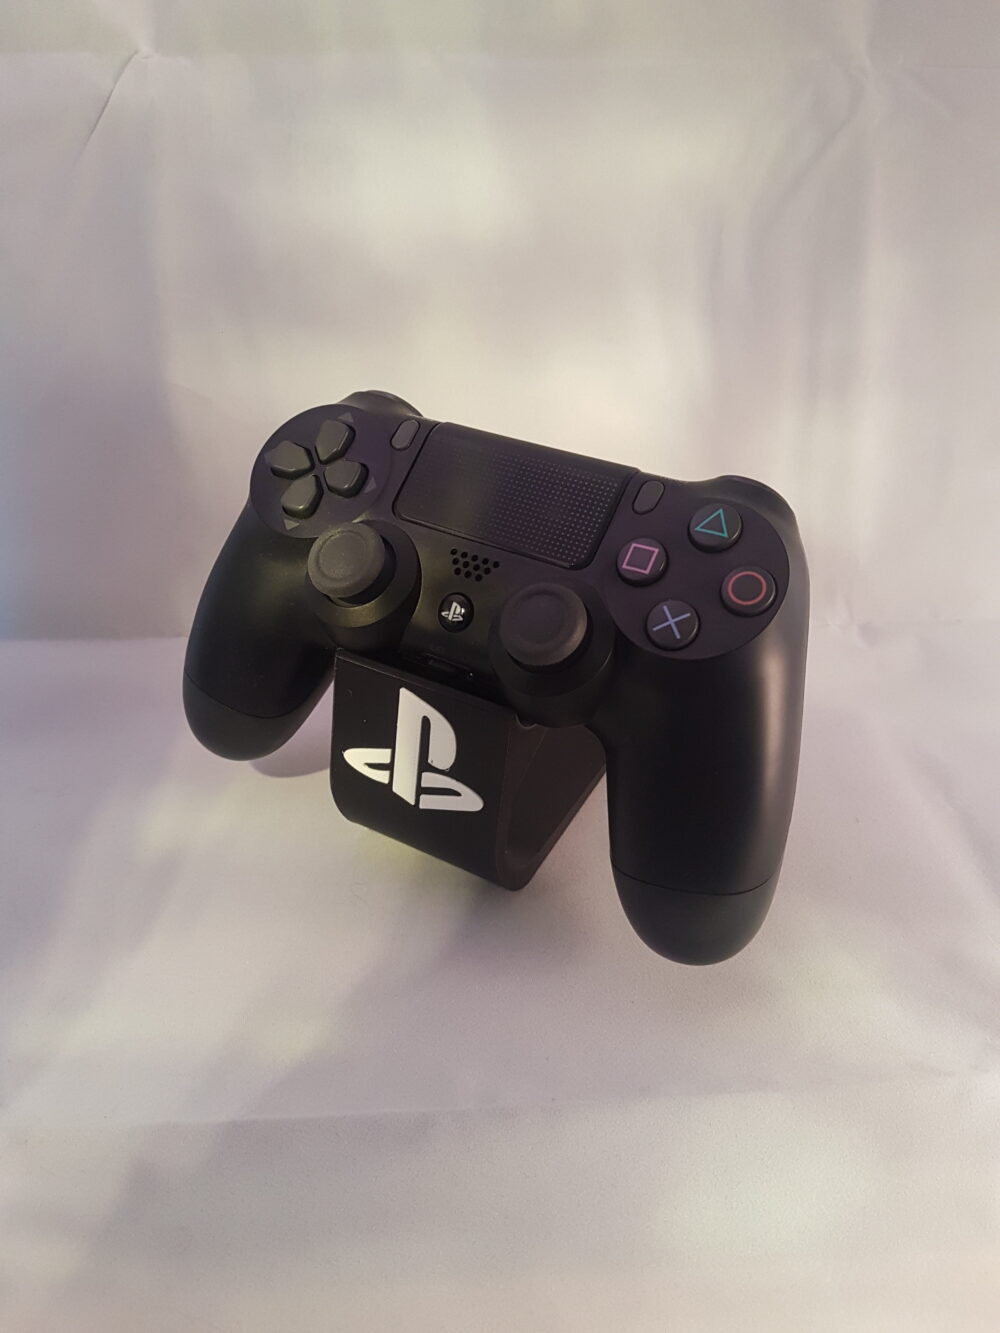 Playstation controller stand/dock